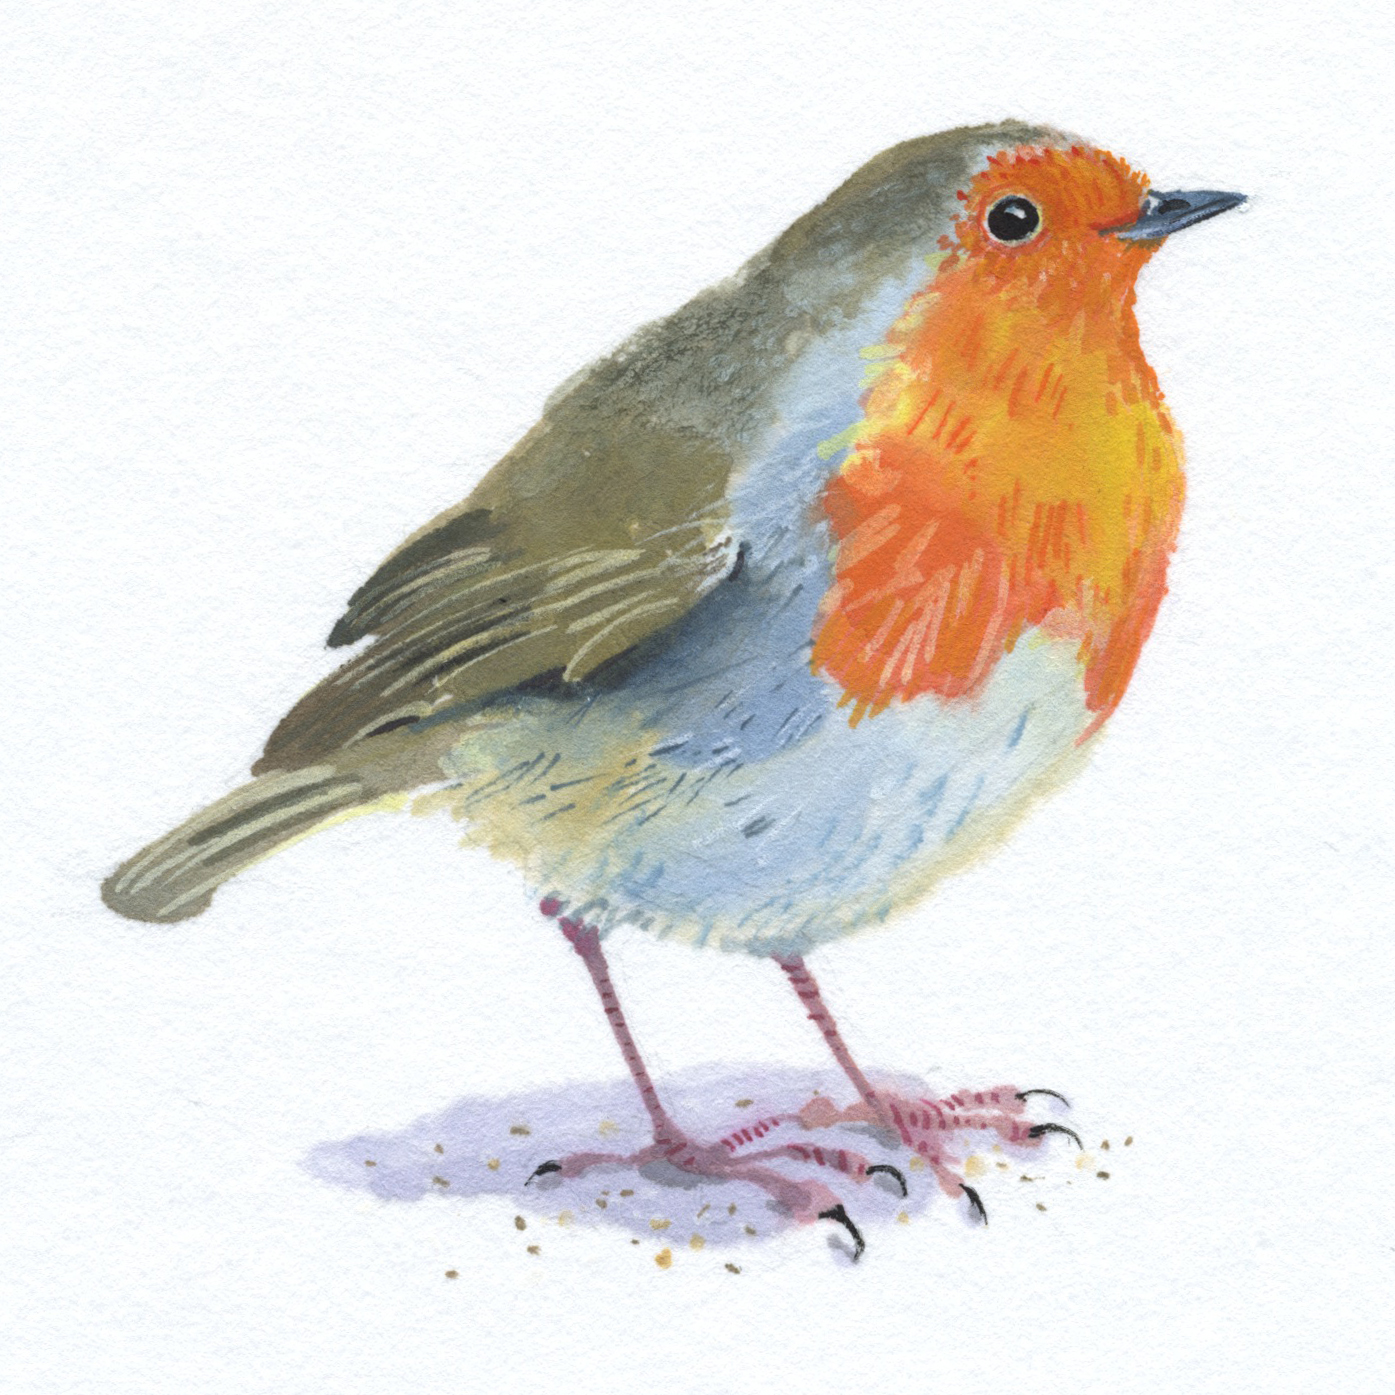 abbey hall robin